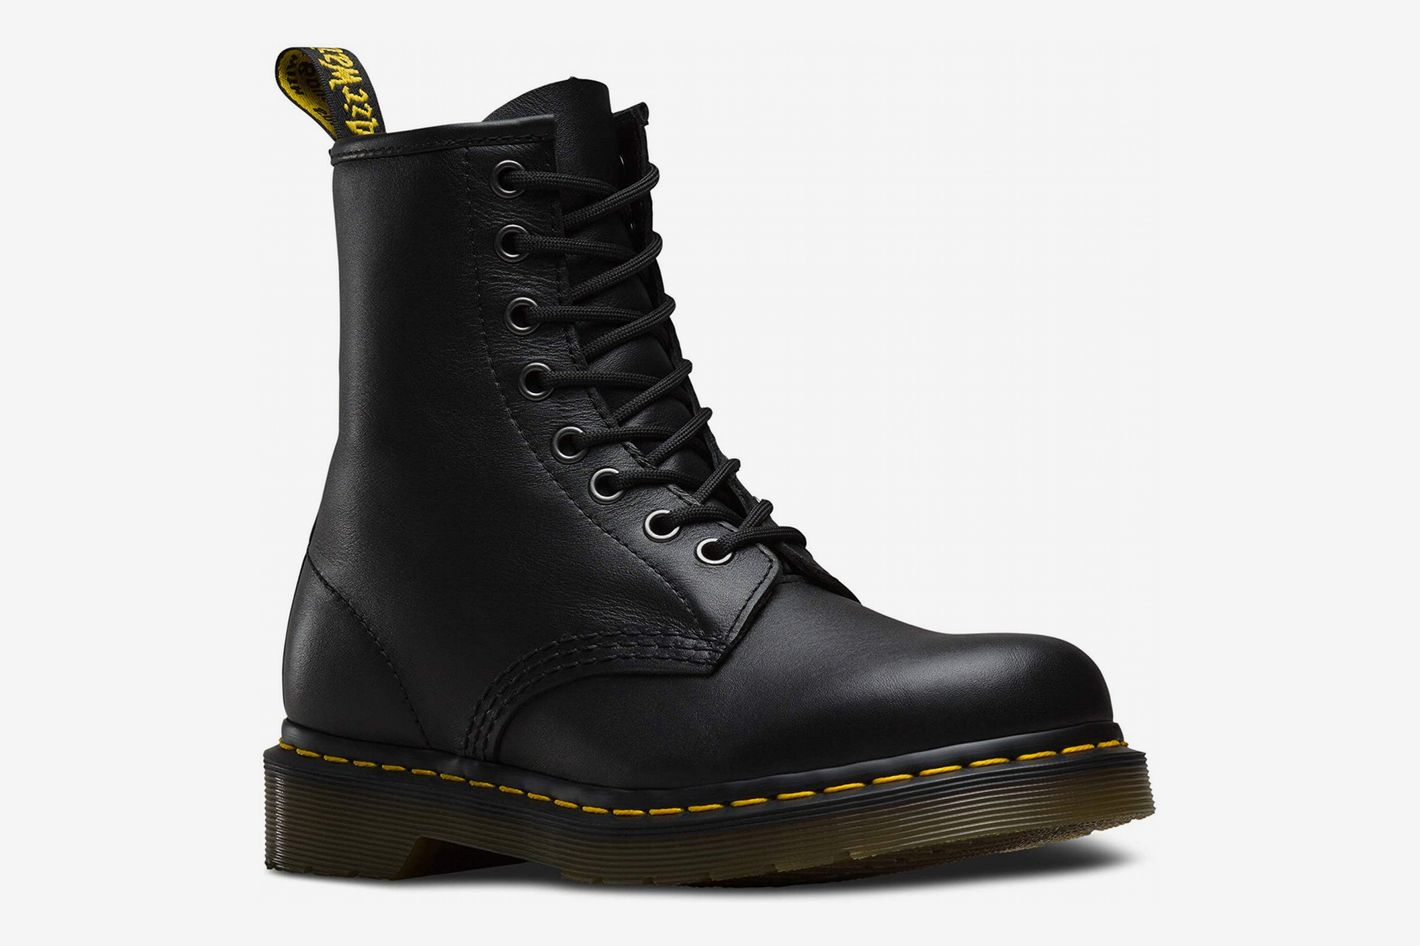 Dr. Martens 1460 Original 8-Eye Leather Boot